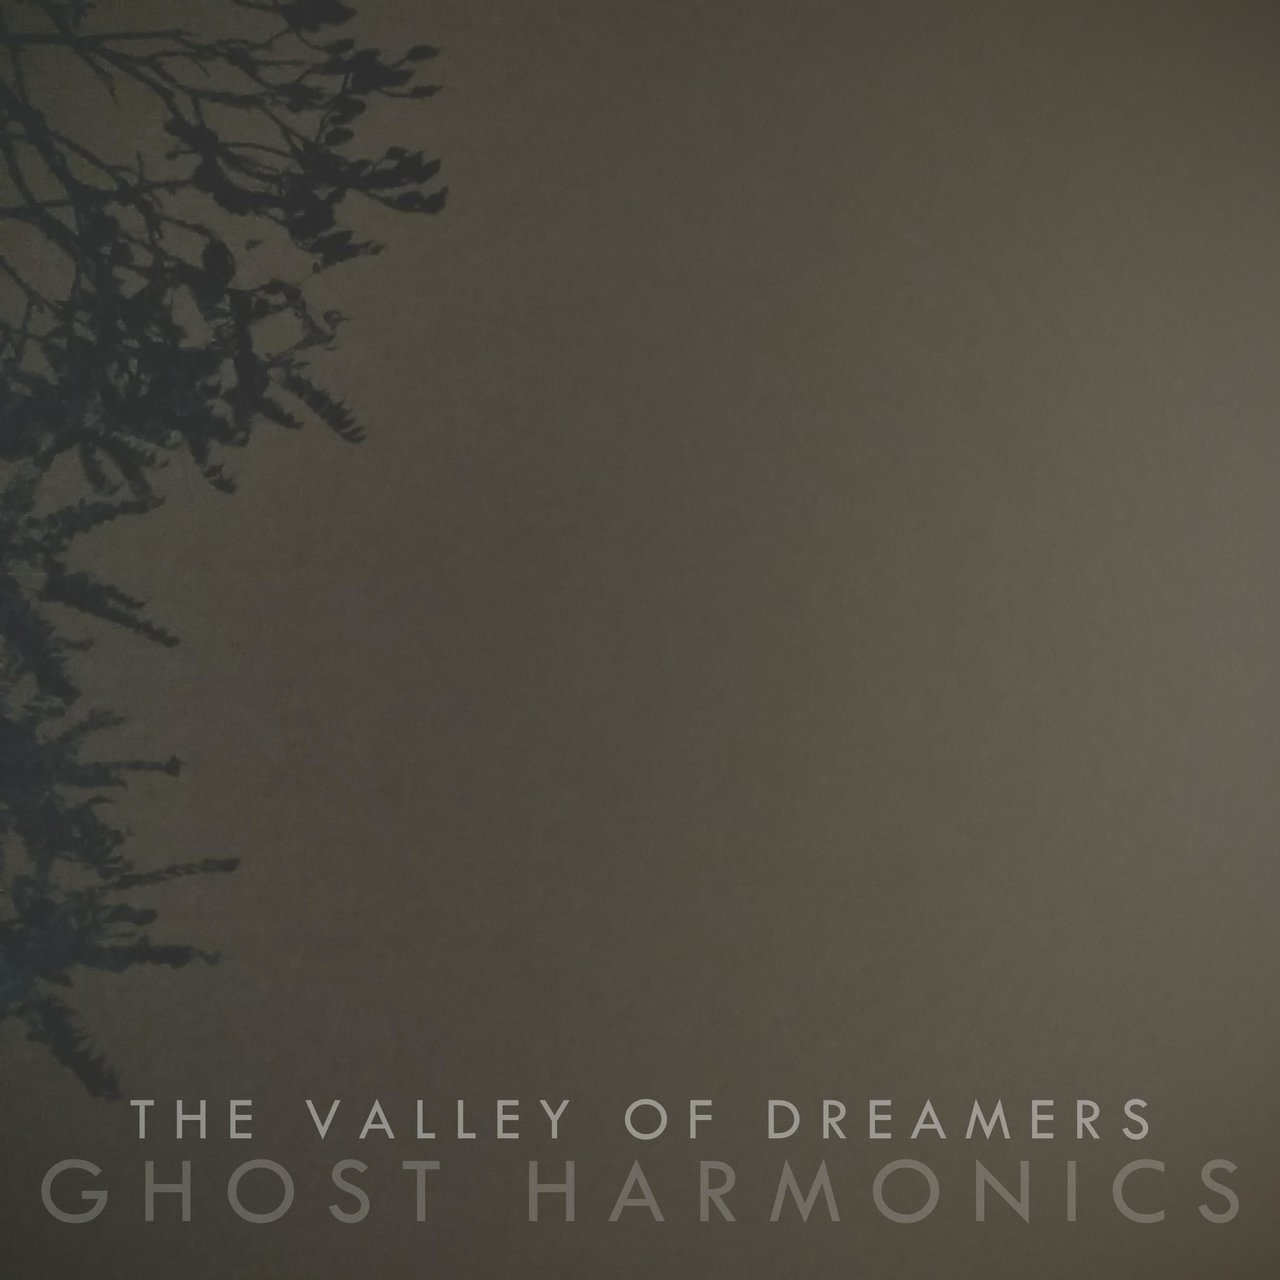 The Valley of Dreamers